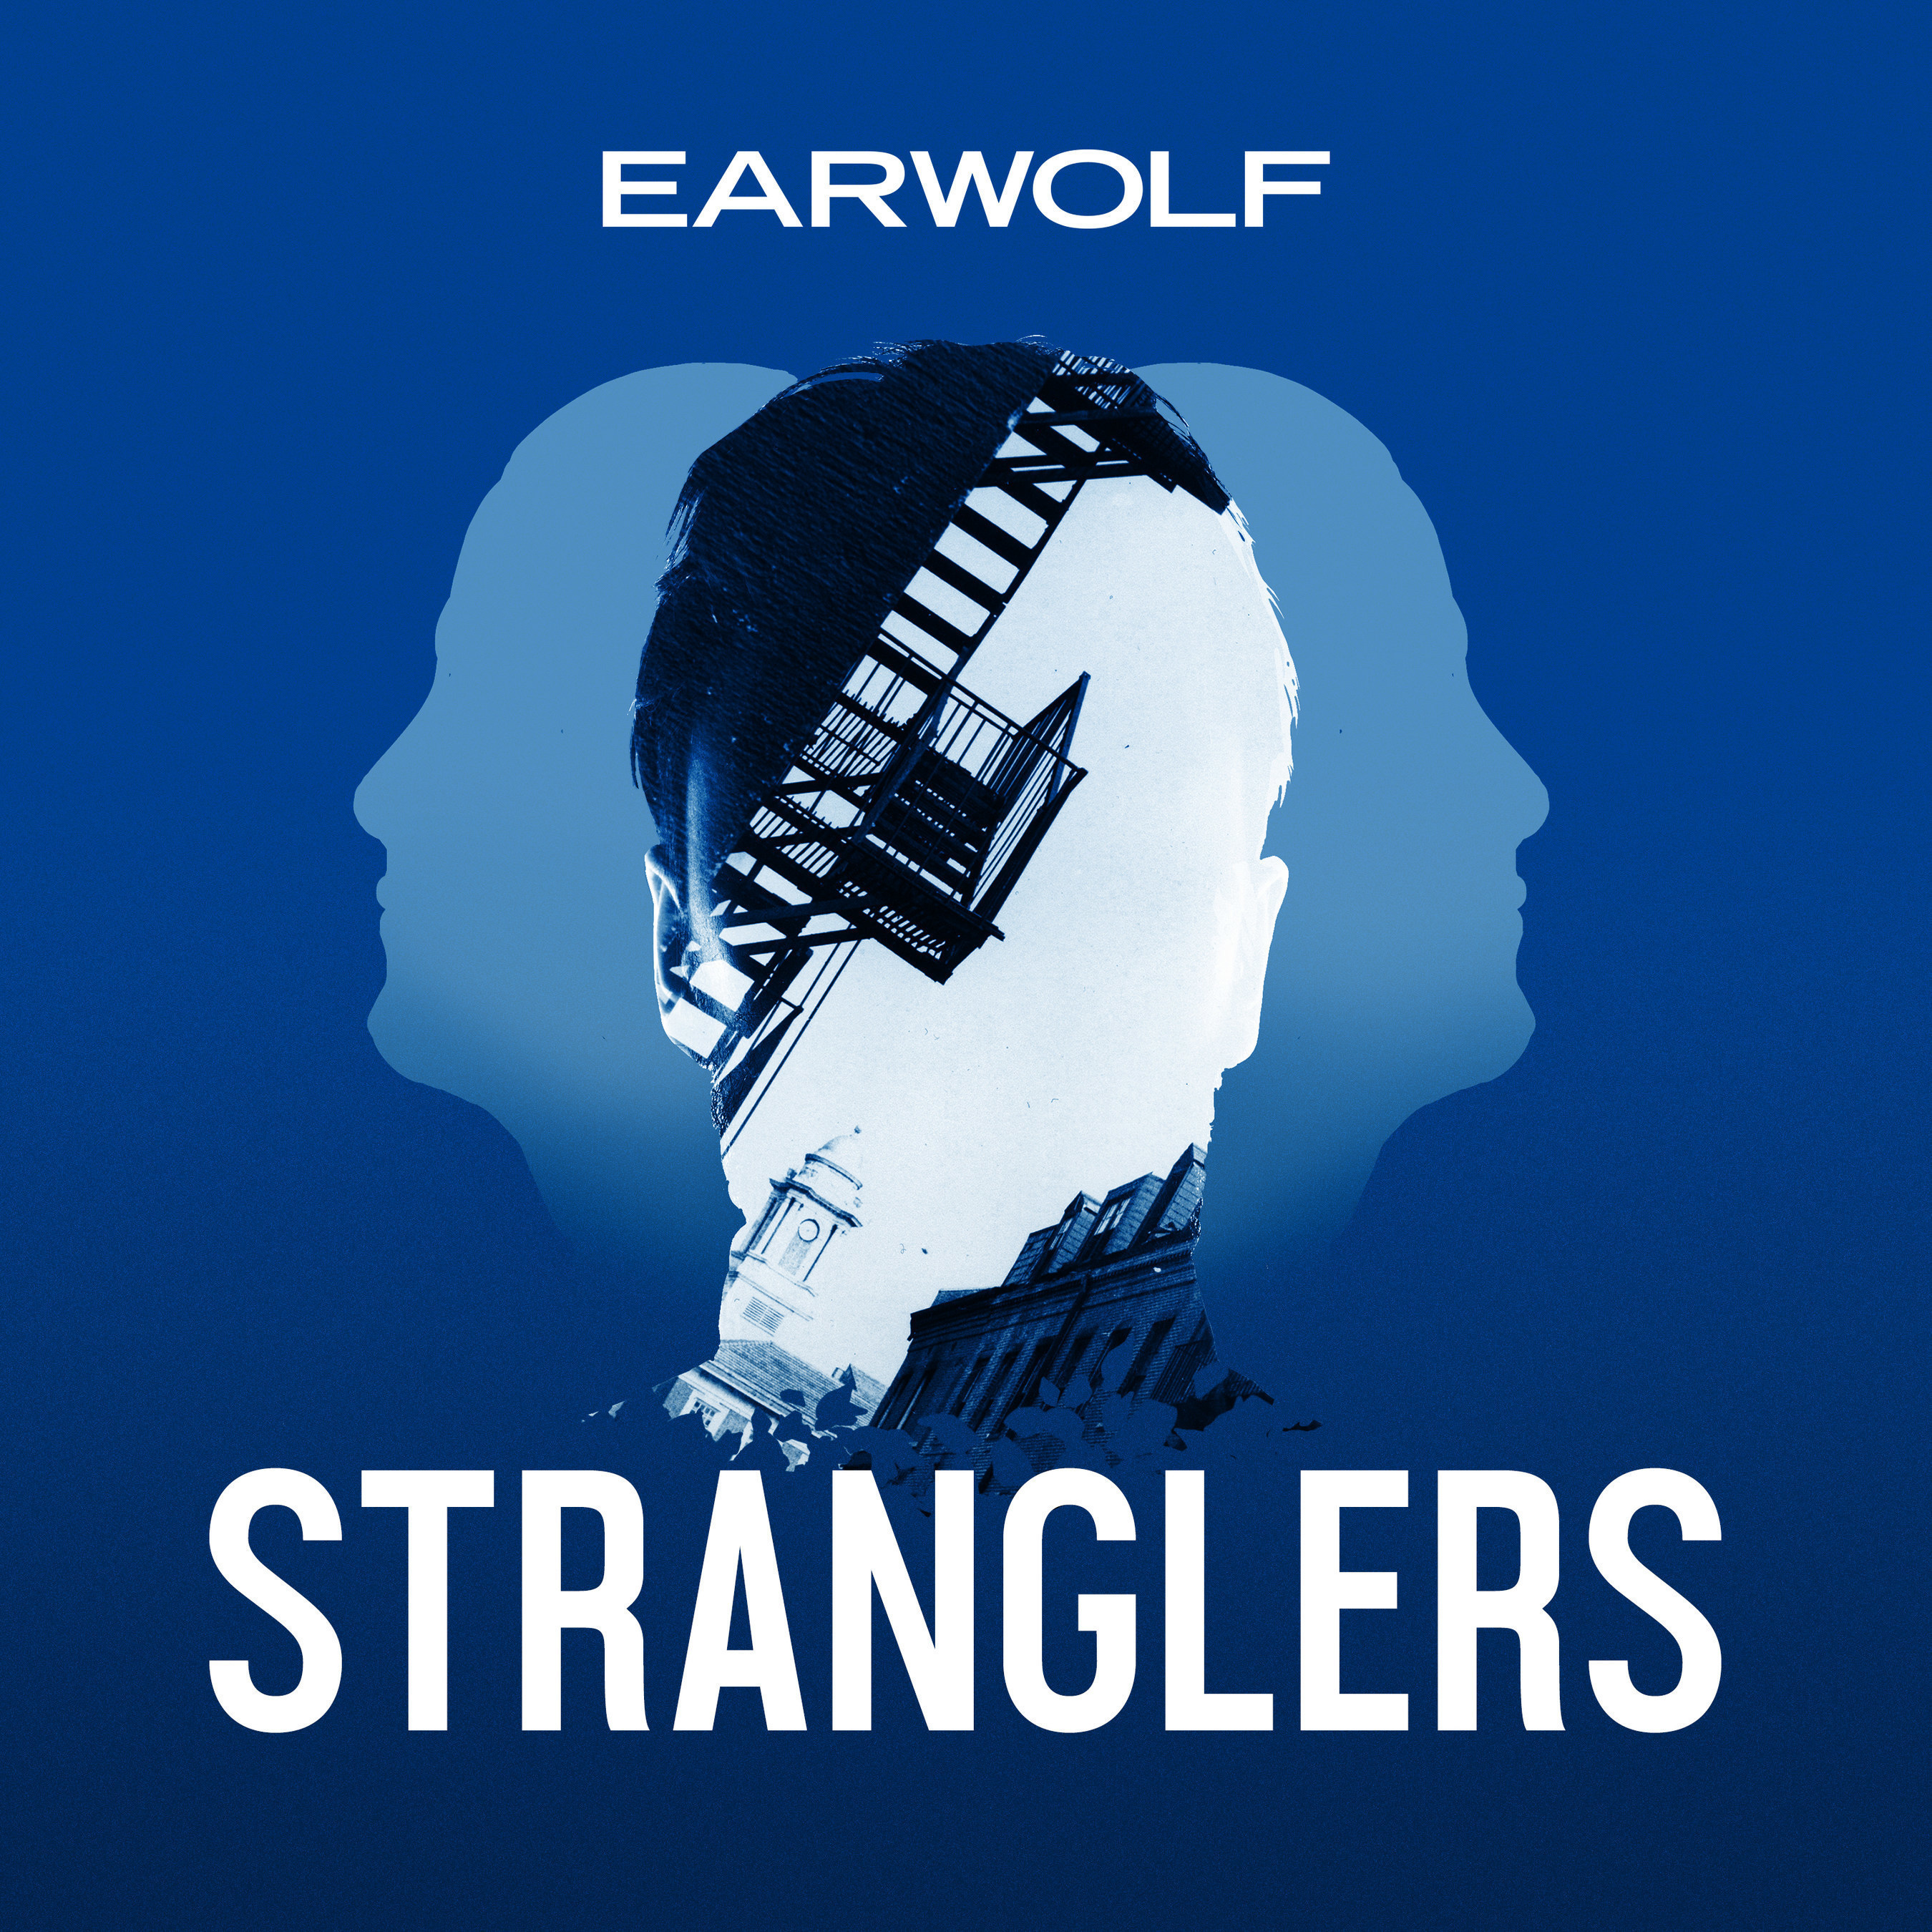 New podcast from Earwolf premieres on Nov. 16